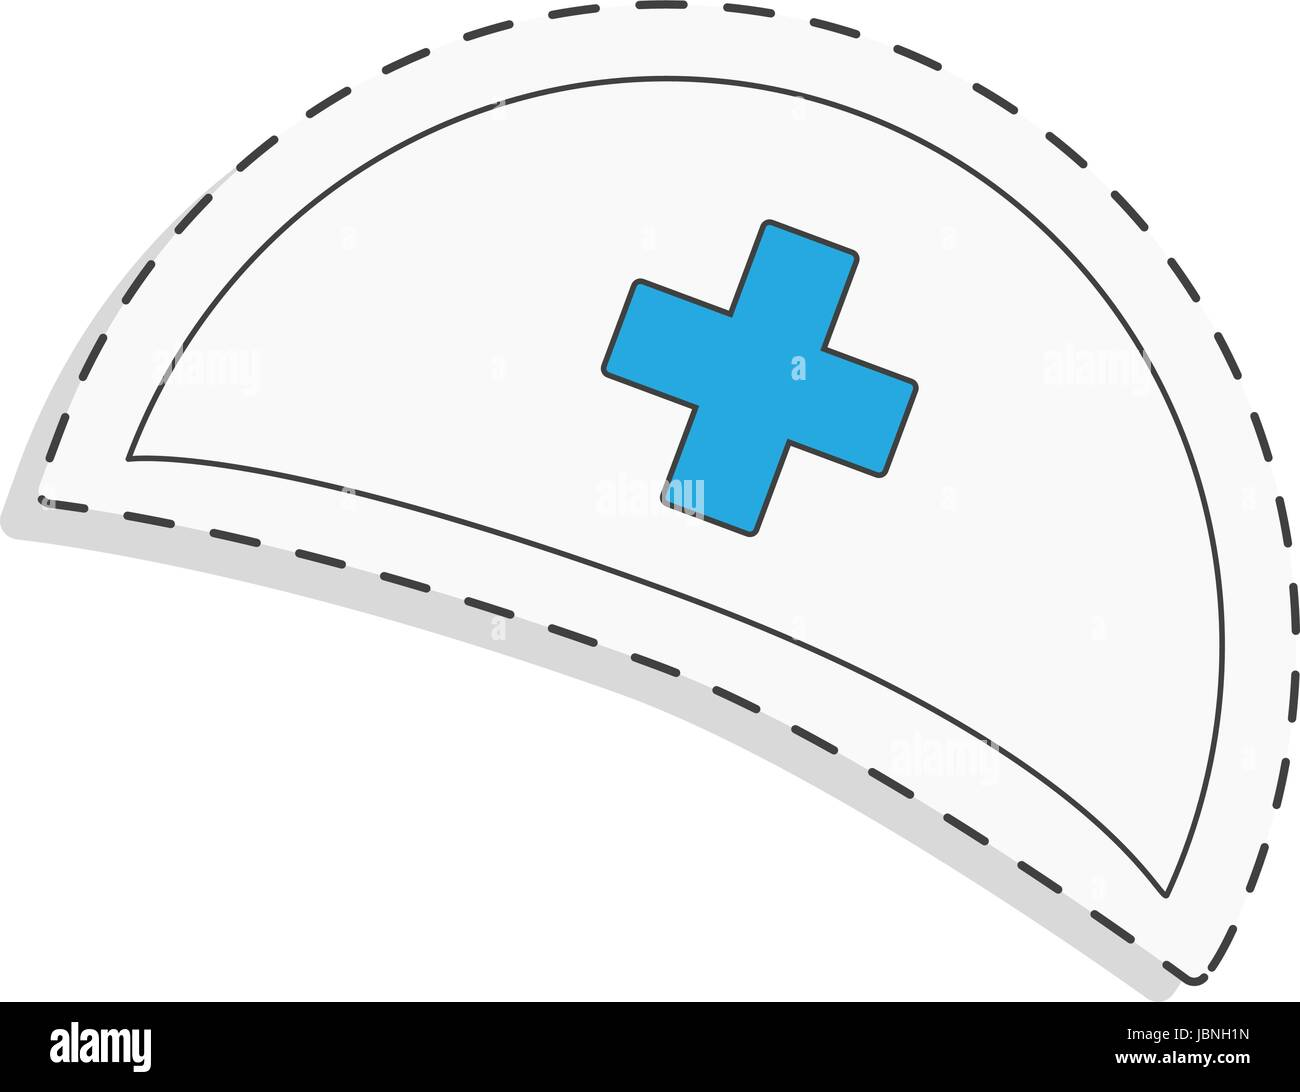 medicine flat icon for design. Nurse cap. World blood donor day. International holiday. donate blood and save life. - Stock Image